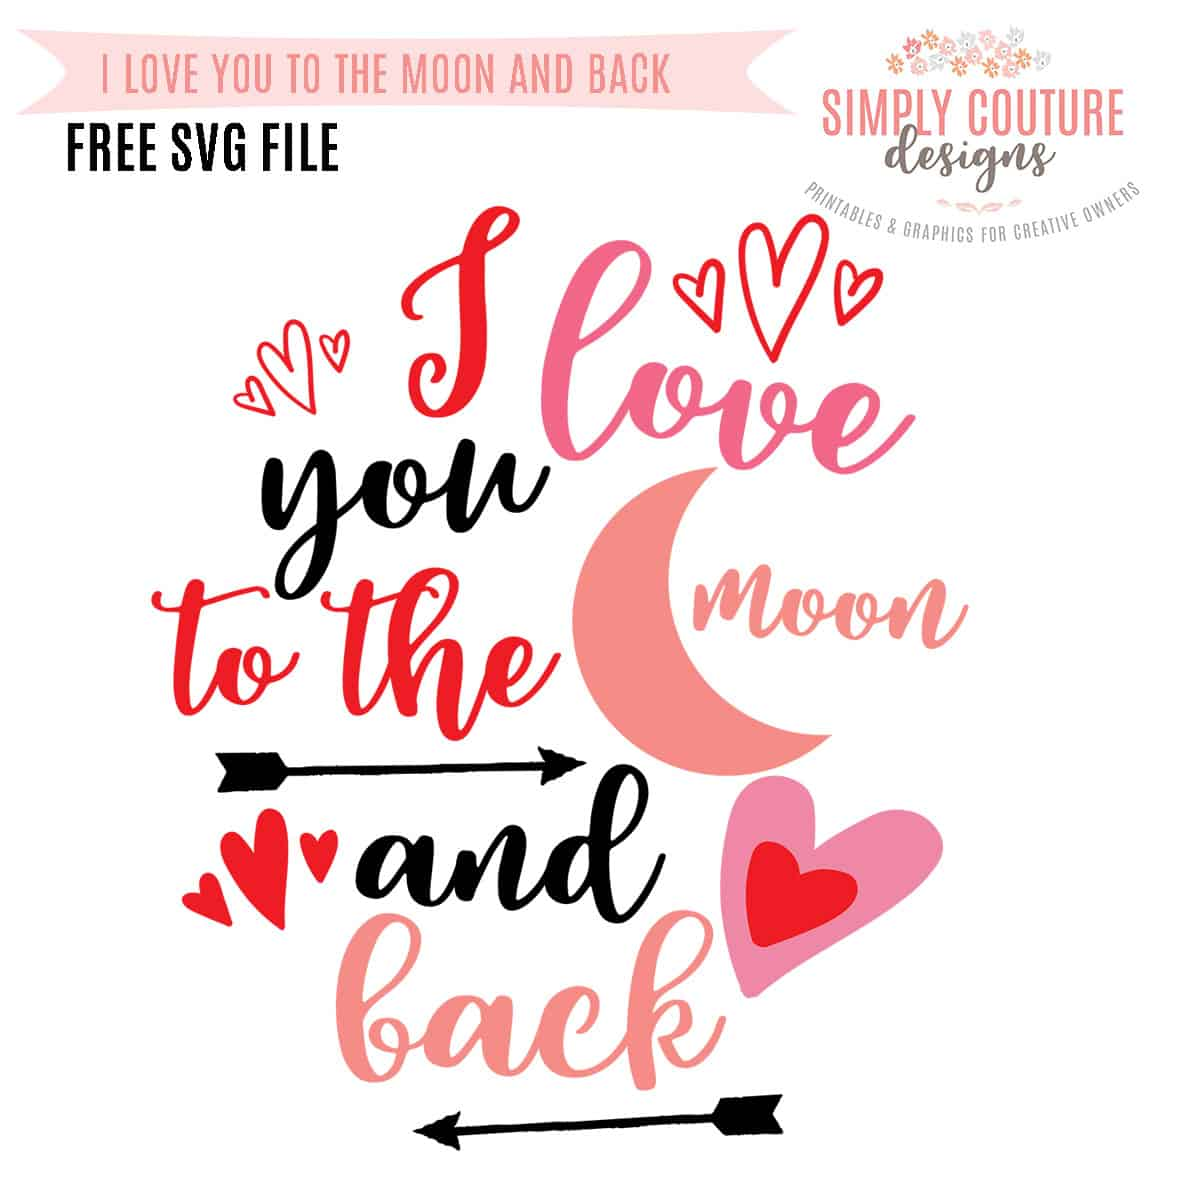 Download Free Valentine's Day SVG File I Love You - Simply Couture ...